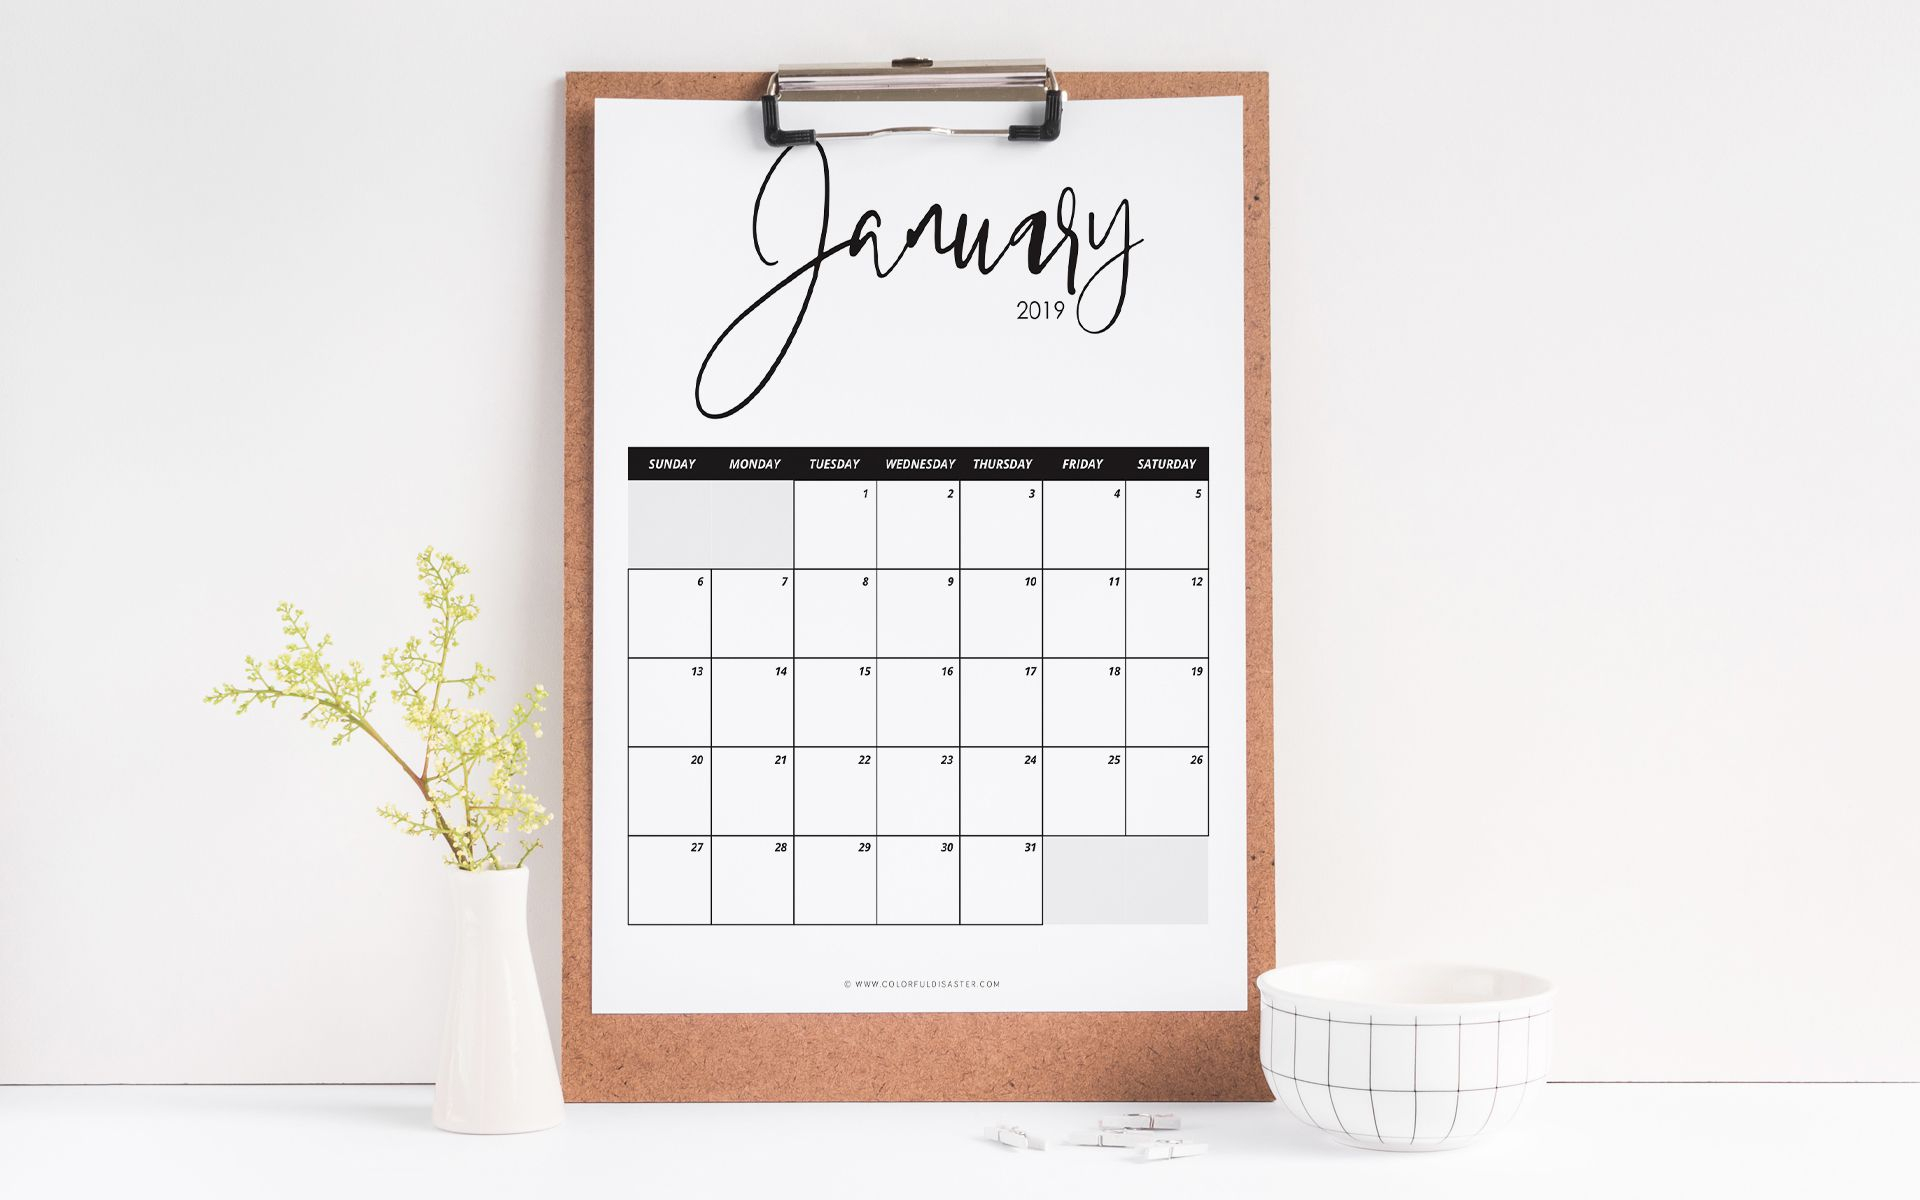 10 Stylish Free, Printable Calendars For 2019 for Fancy August Printable Calendar Template